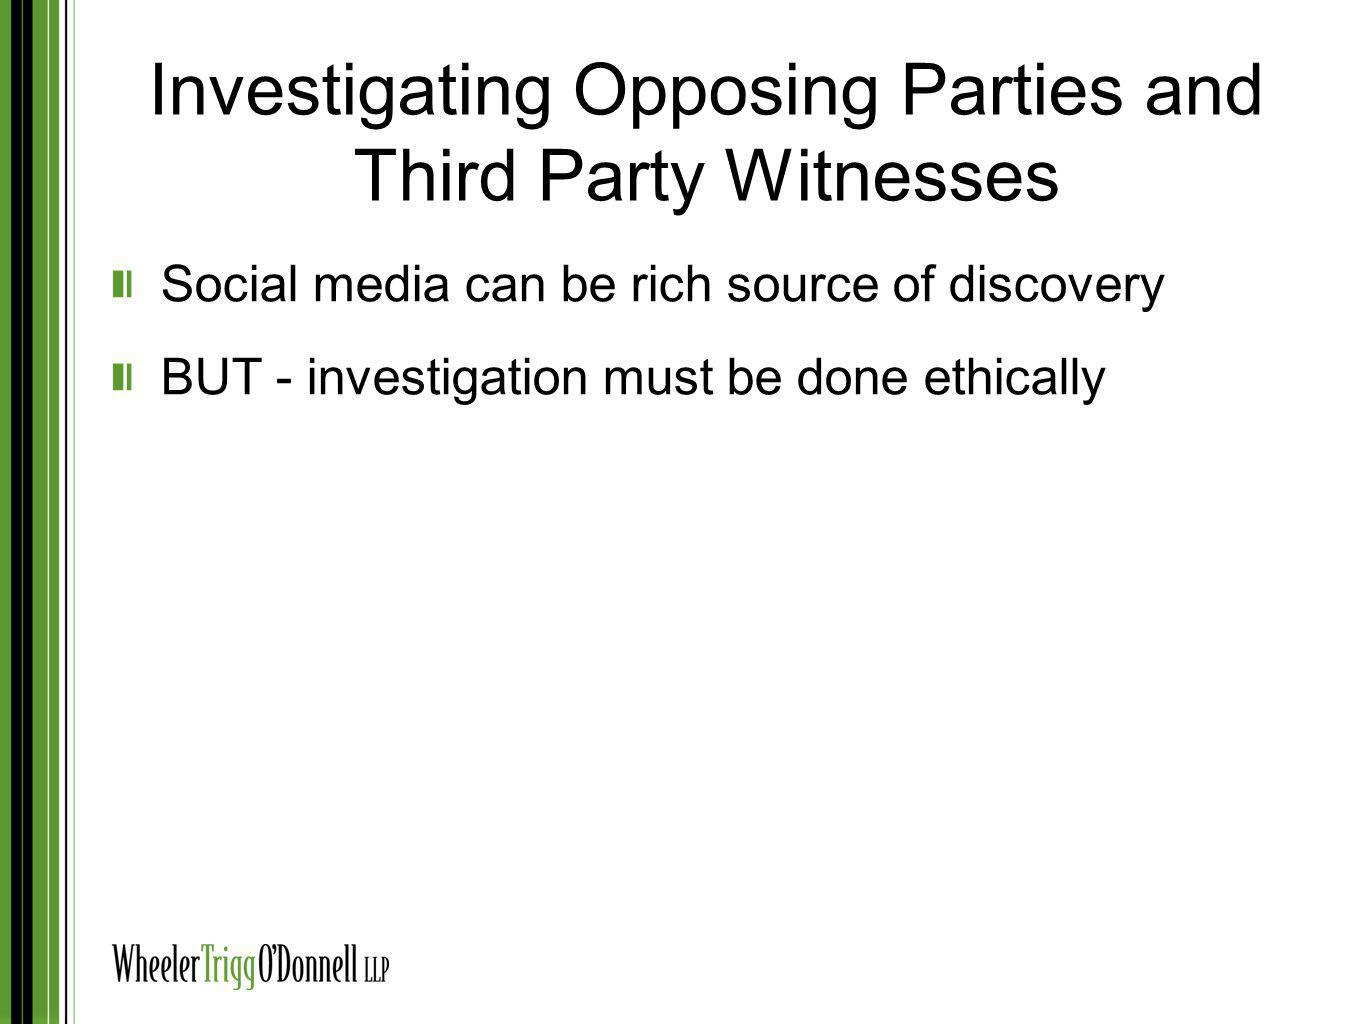 Investigating Opposing Parties and Third Party Witnesses Social media can be rich source of discovery BUT - investigation must be done ethically